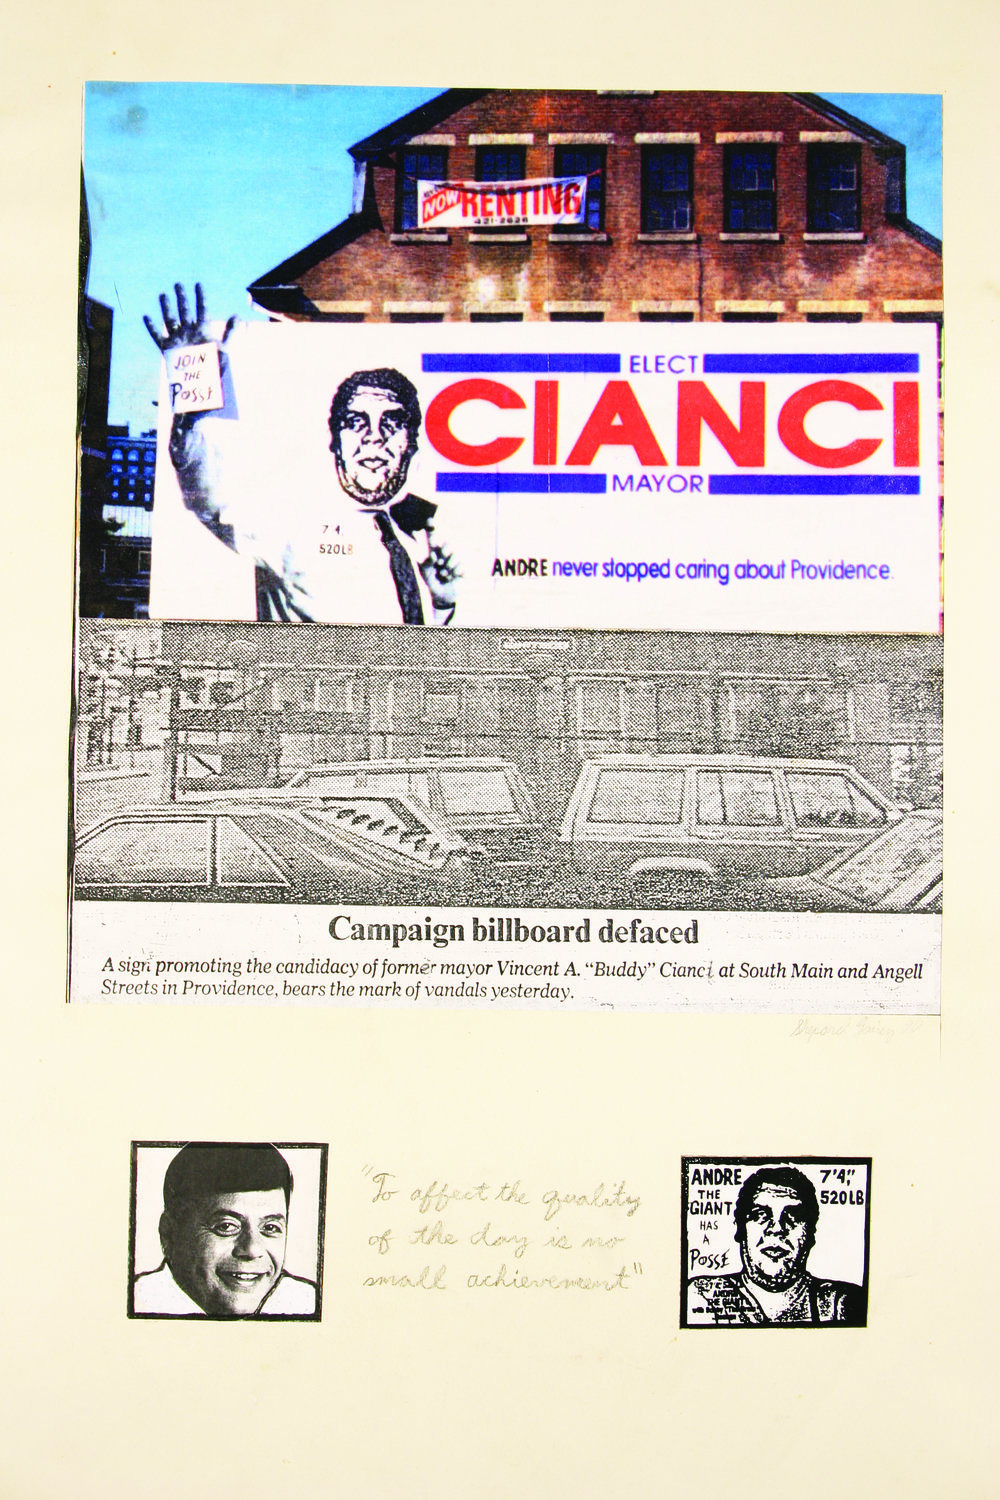 "Frustrated with the superficiality of American politics, RISD student Shepard Fairey wheatpasted an 8.5-foot-tall Andre the Giant image over Buddy Cianci's head on a campaign billboard. The prank was inspired by a fortune-cookie message: ""To affect the quality of the day is no small achievement.""  Courtesy of Shepard Fairey."